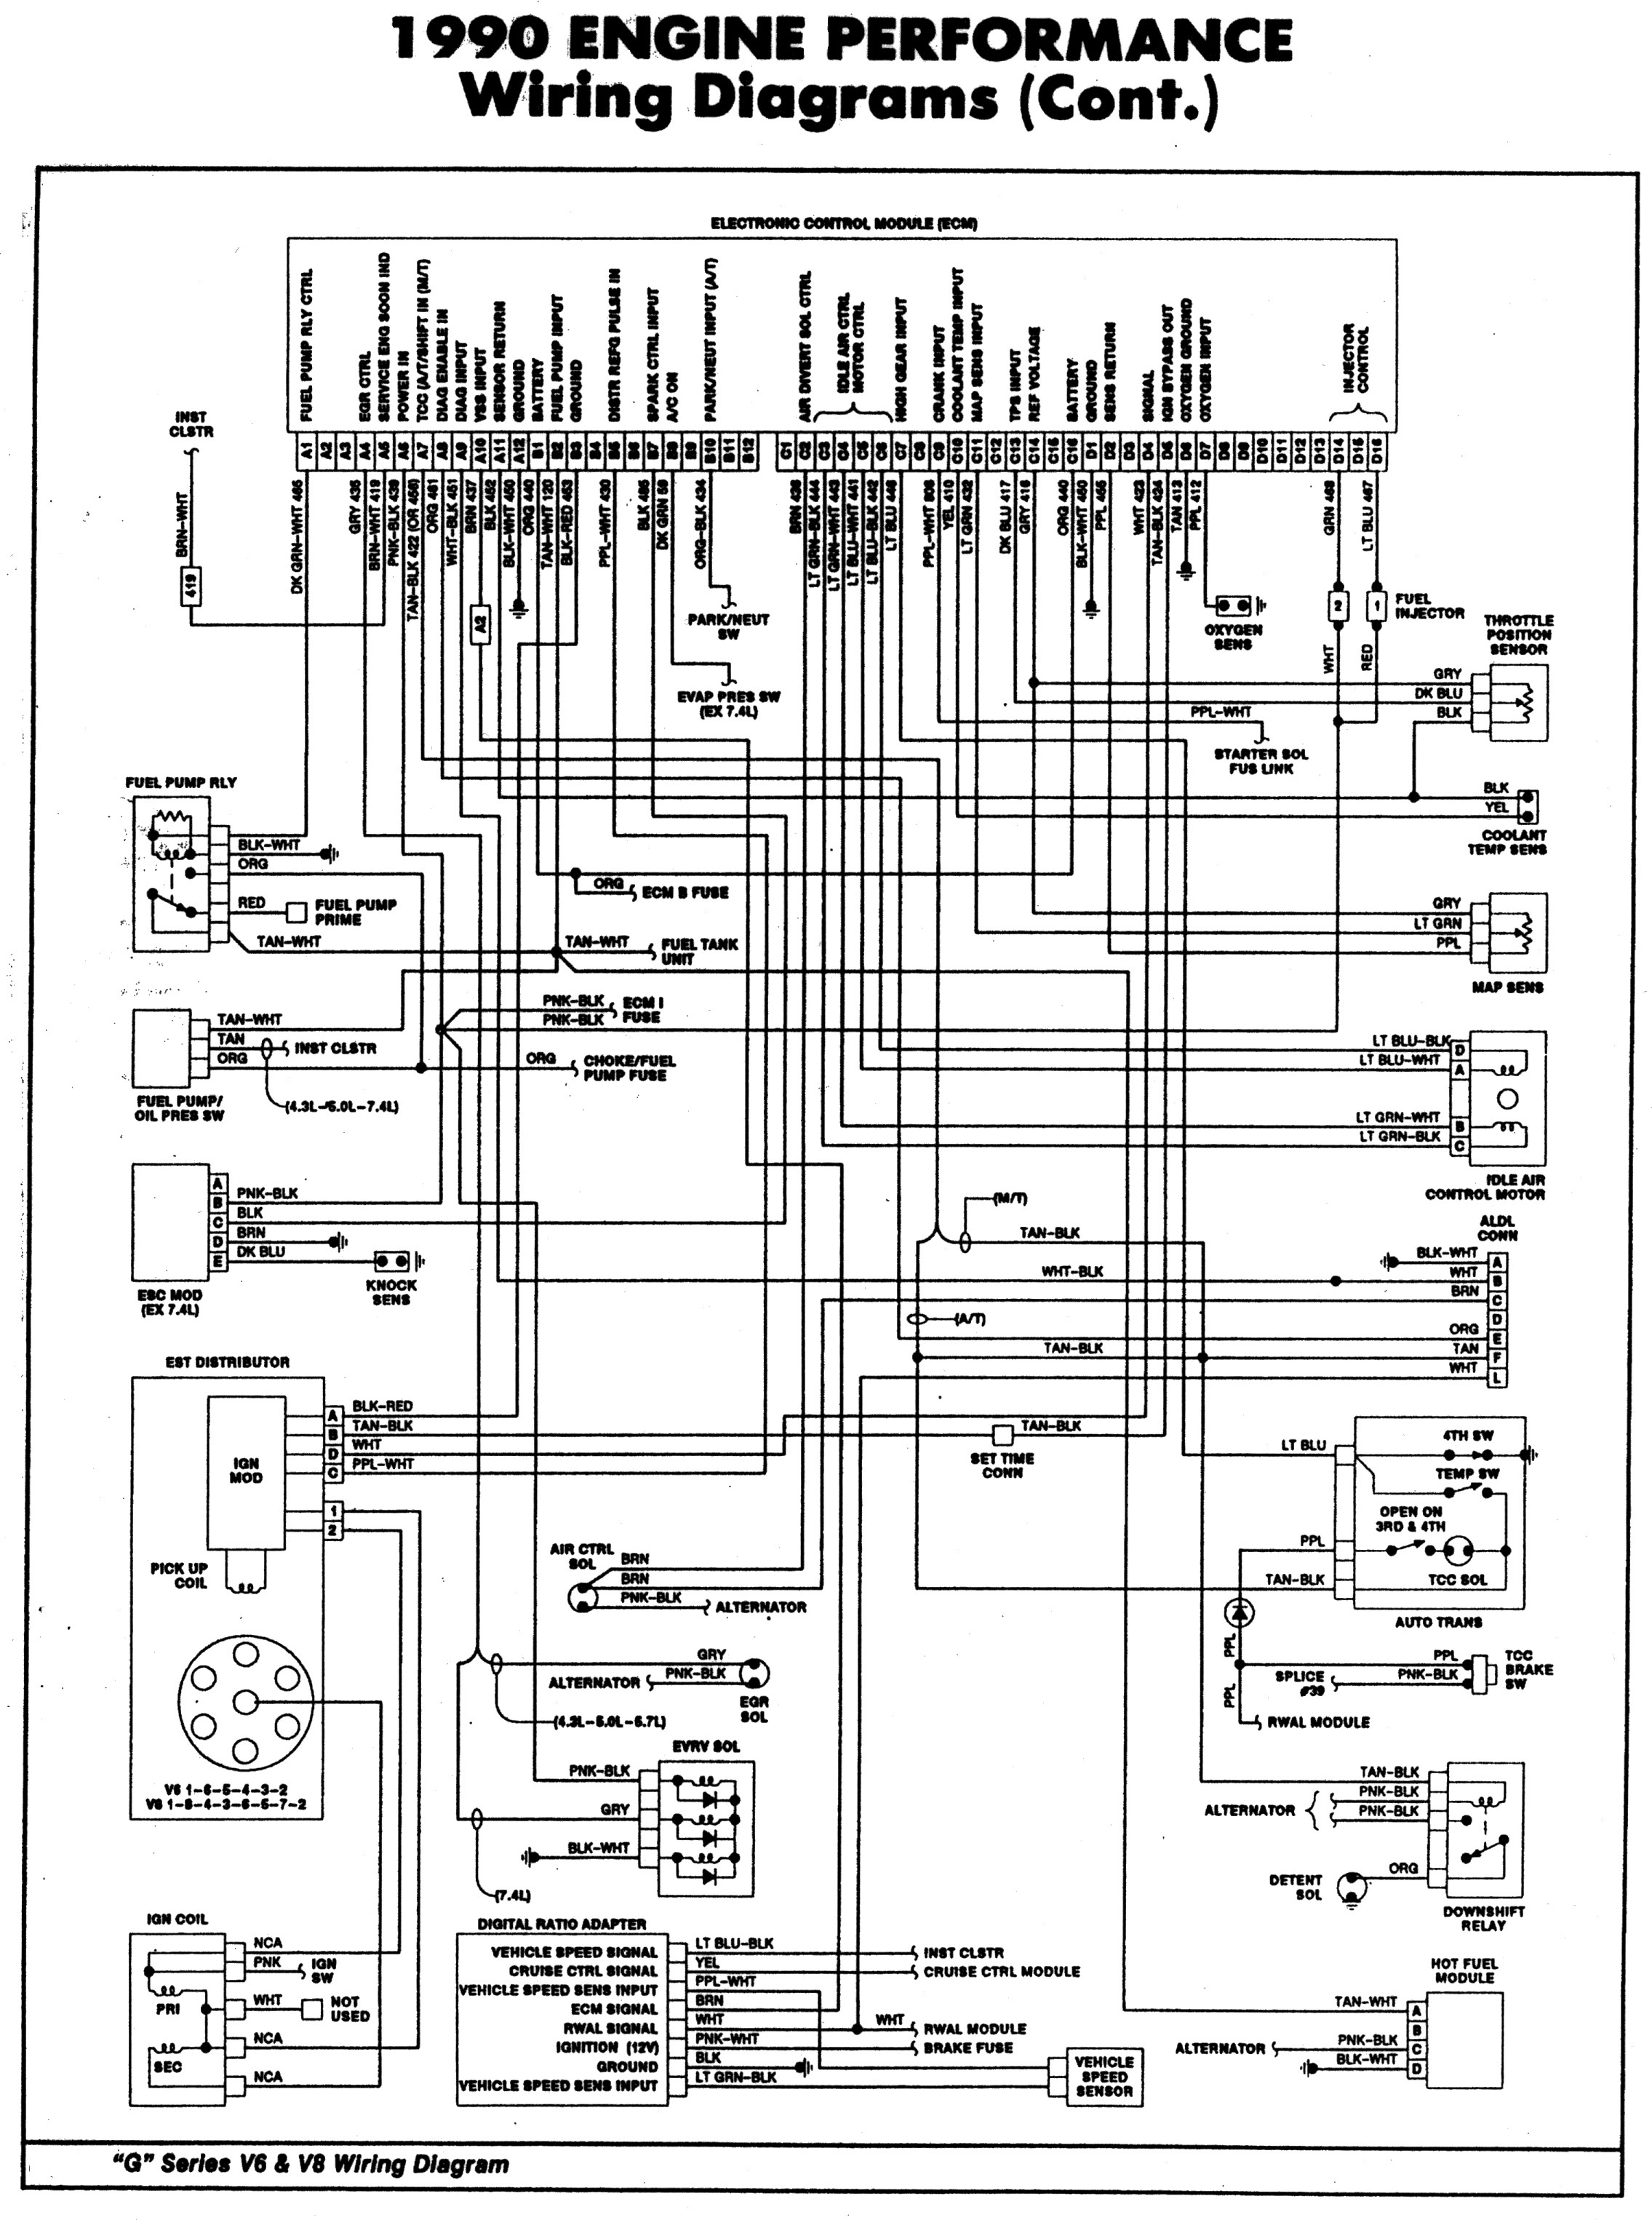 hight resolution of 1989 chevy tbi 350 engine wiring diagram wiring schematic diagram rh asparklingjourney com 305 chevy motor